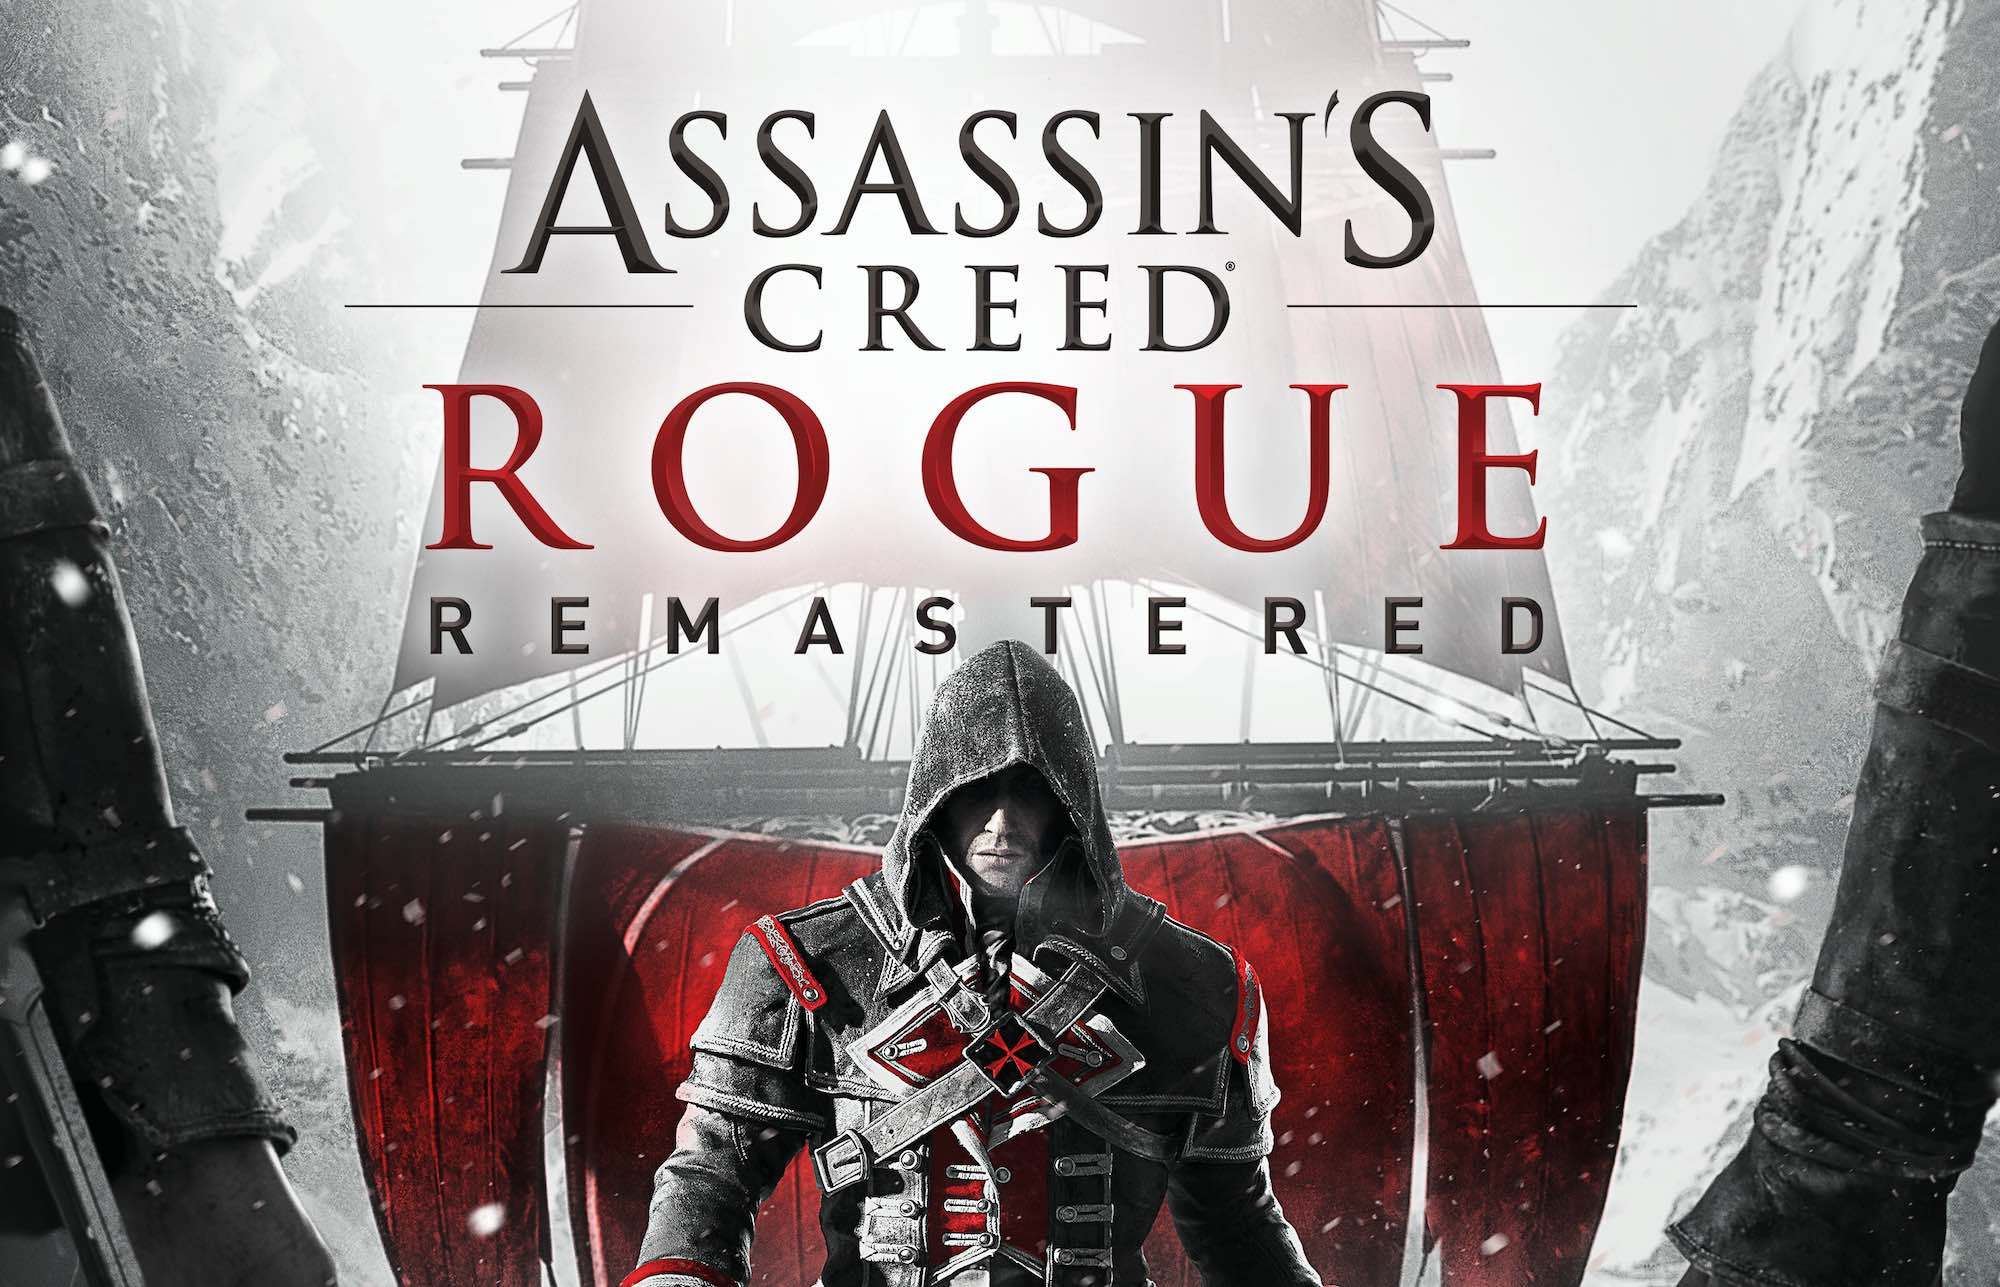 A remastered edition of Assassin's Creed Rogue is coming to the Play Station 4 and Xbox One platforms later this year